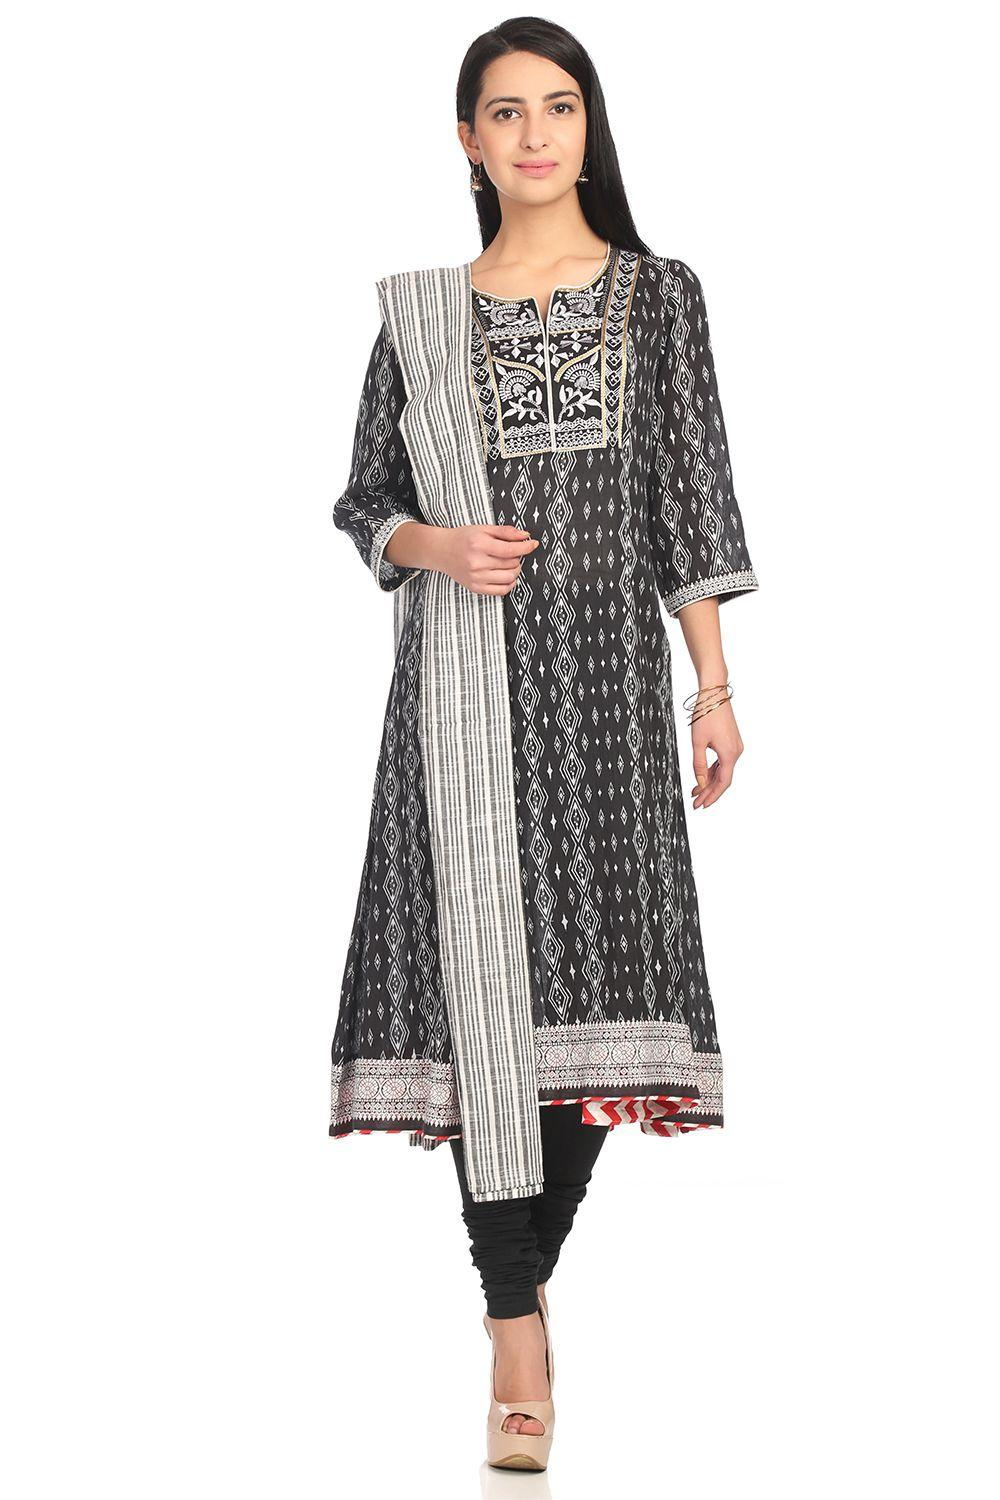 Black Kalidar Cotton Suit Set - SKD4907SS18BLK